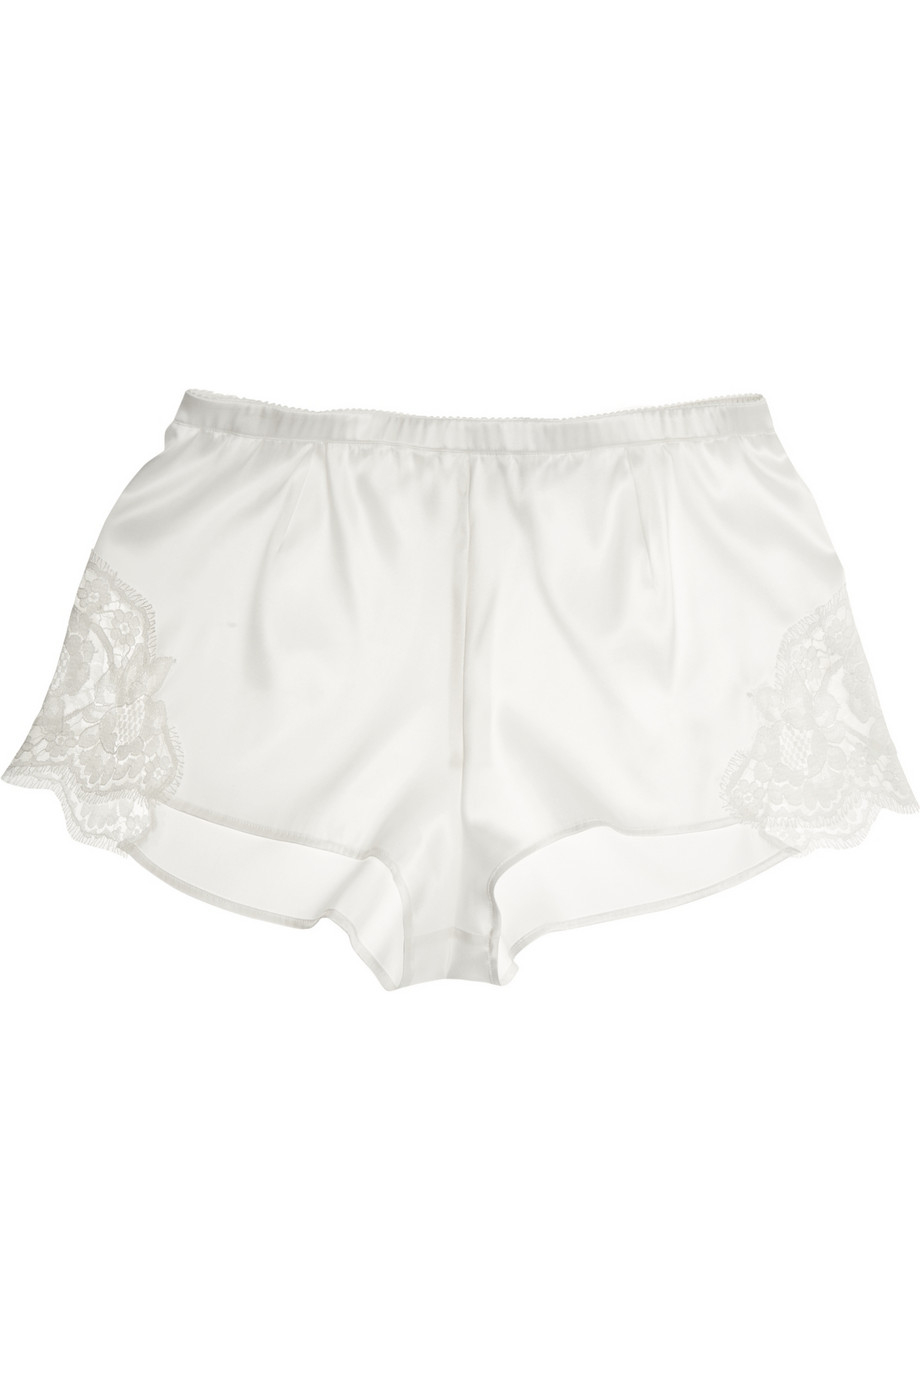 Dolce & gabbana Lace-Trimmed Stretch-Silk Satin Shorts in White | Lyst